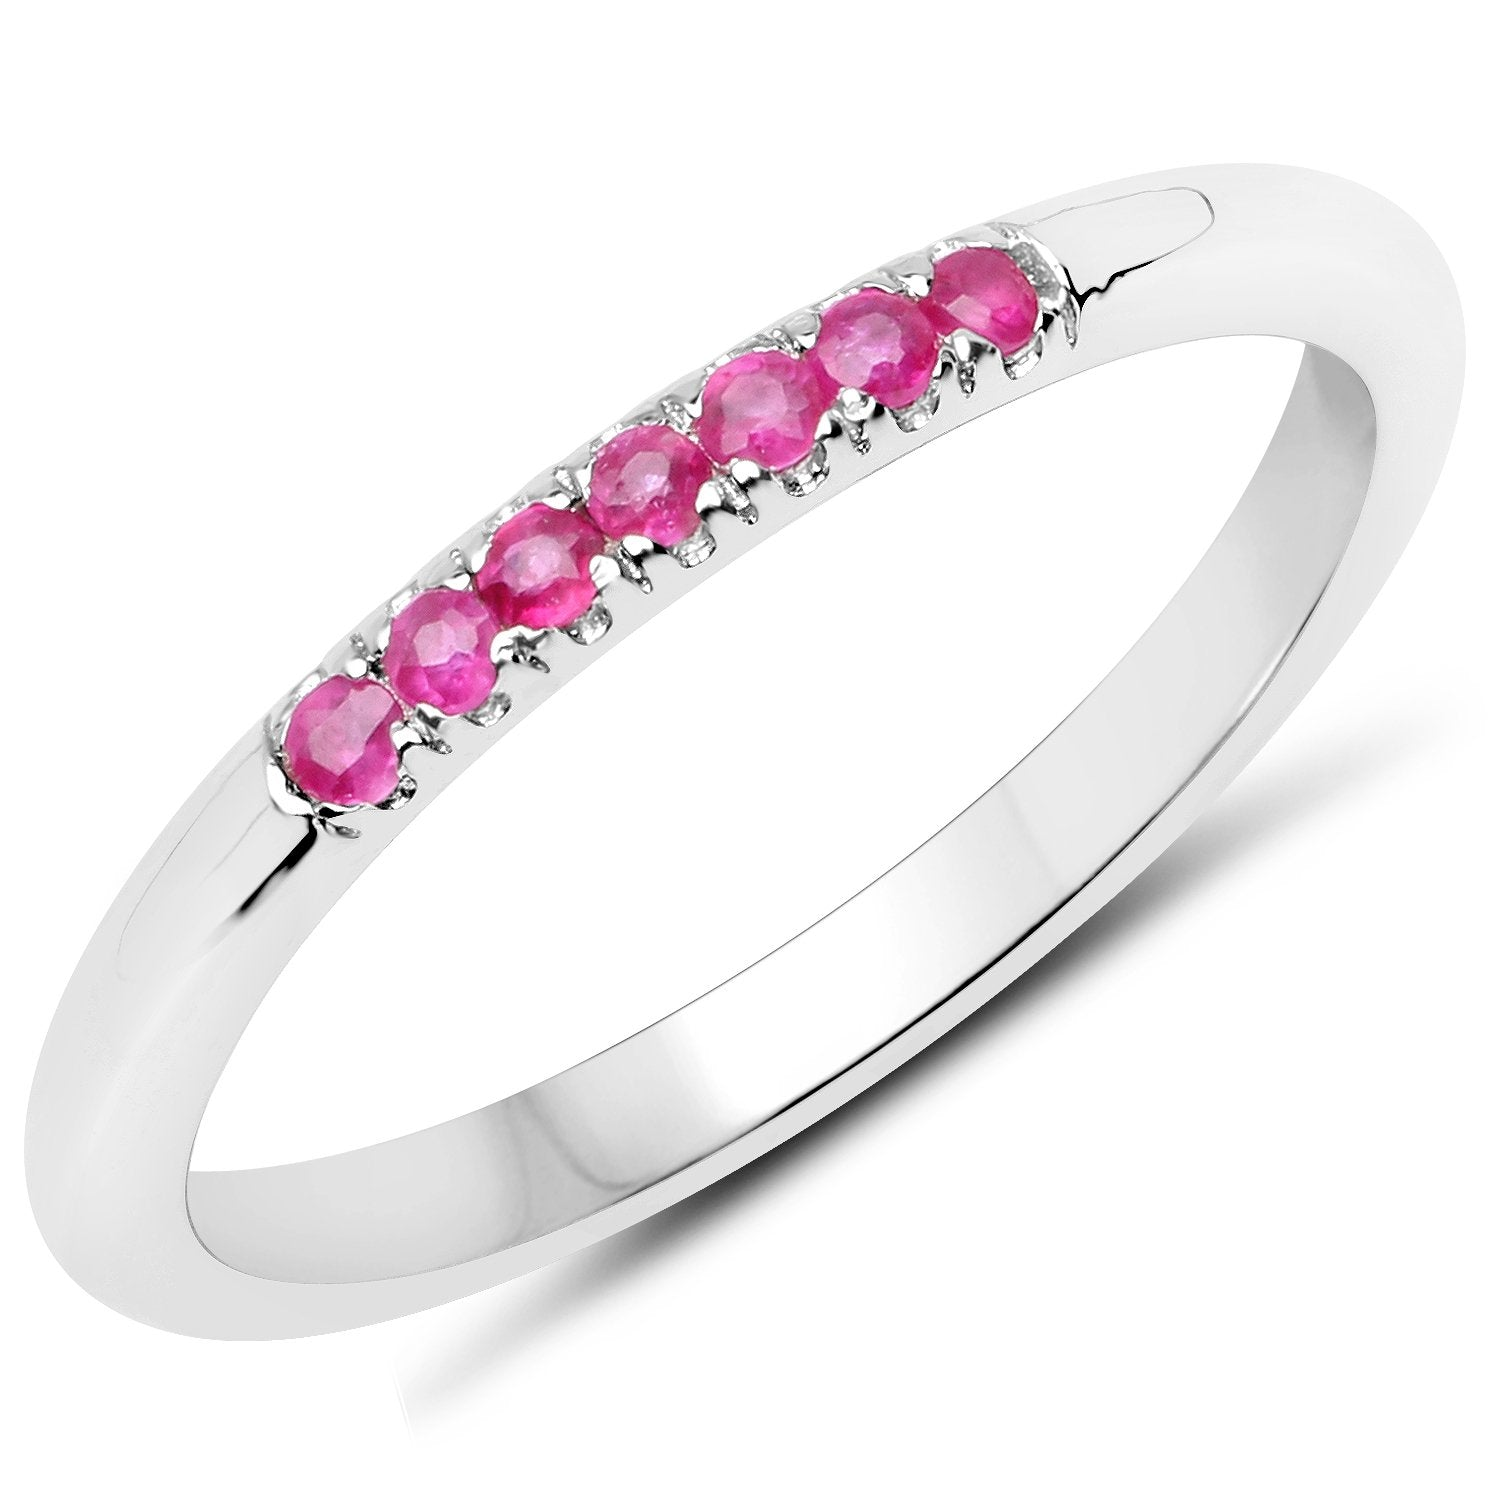 LoveHuang 0.12 Carats Genuine Ruby Stacking Ring Solid .925 Sterling Silver With Rhodium Plating